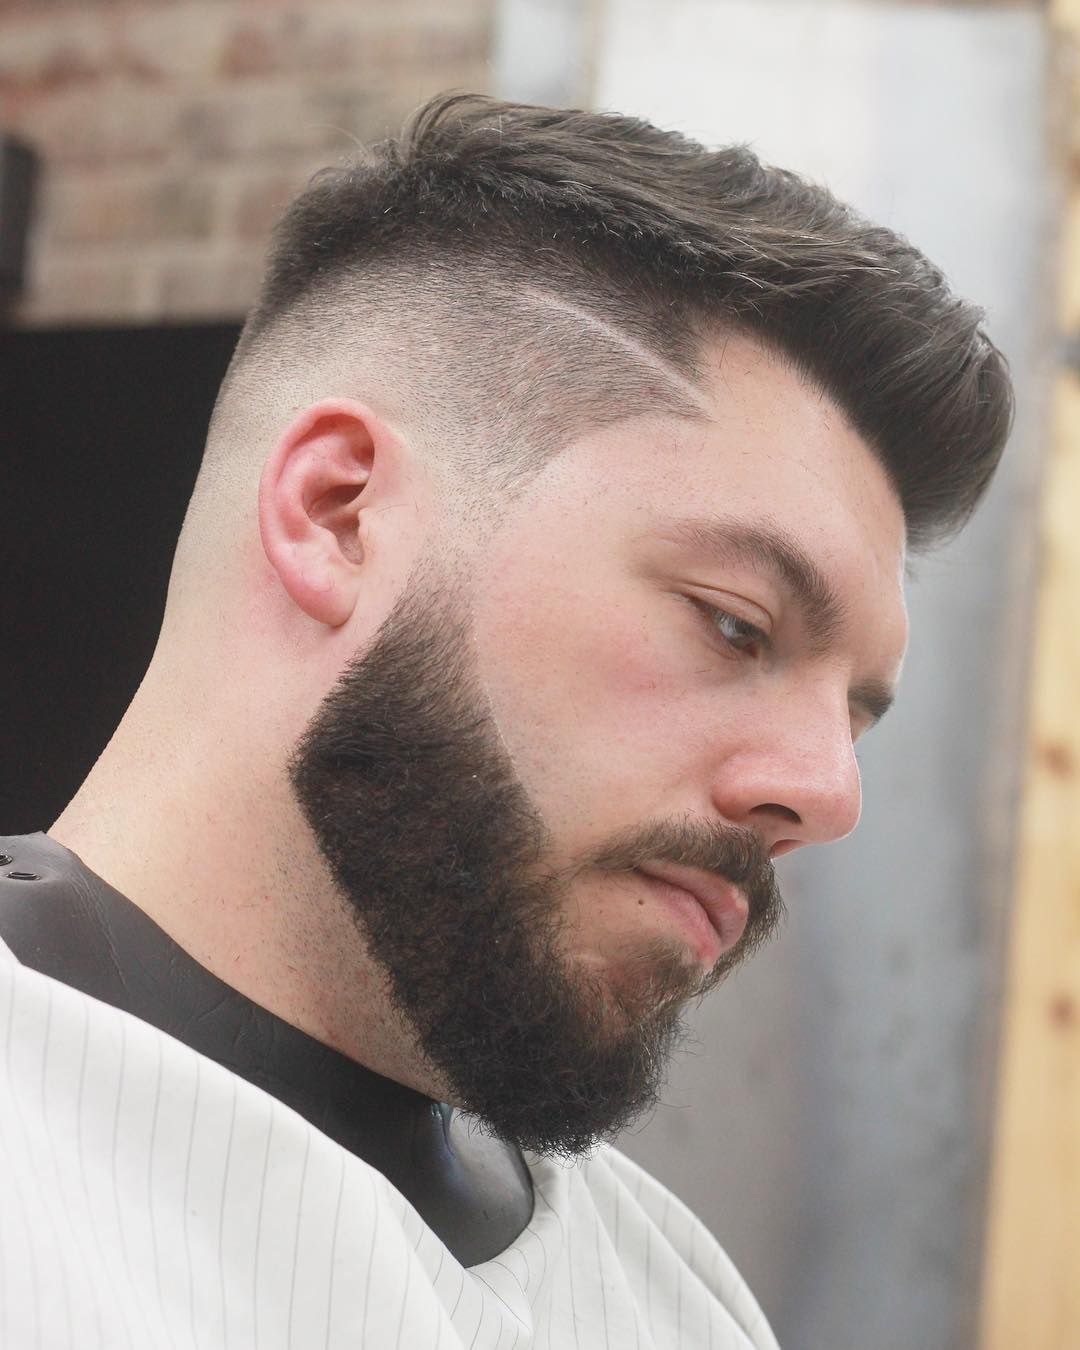 Mens haircuts with beards  simple regular clean cut haircuts for men  haircuts